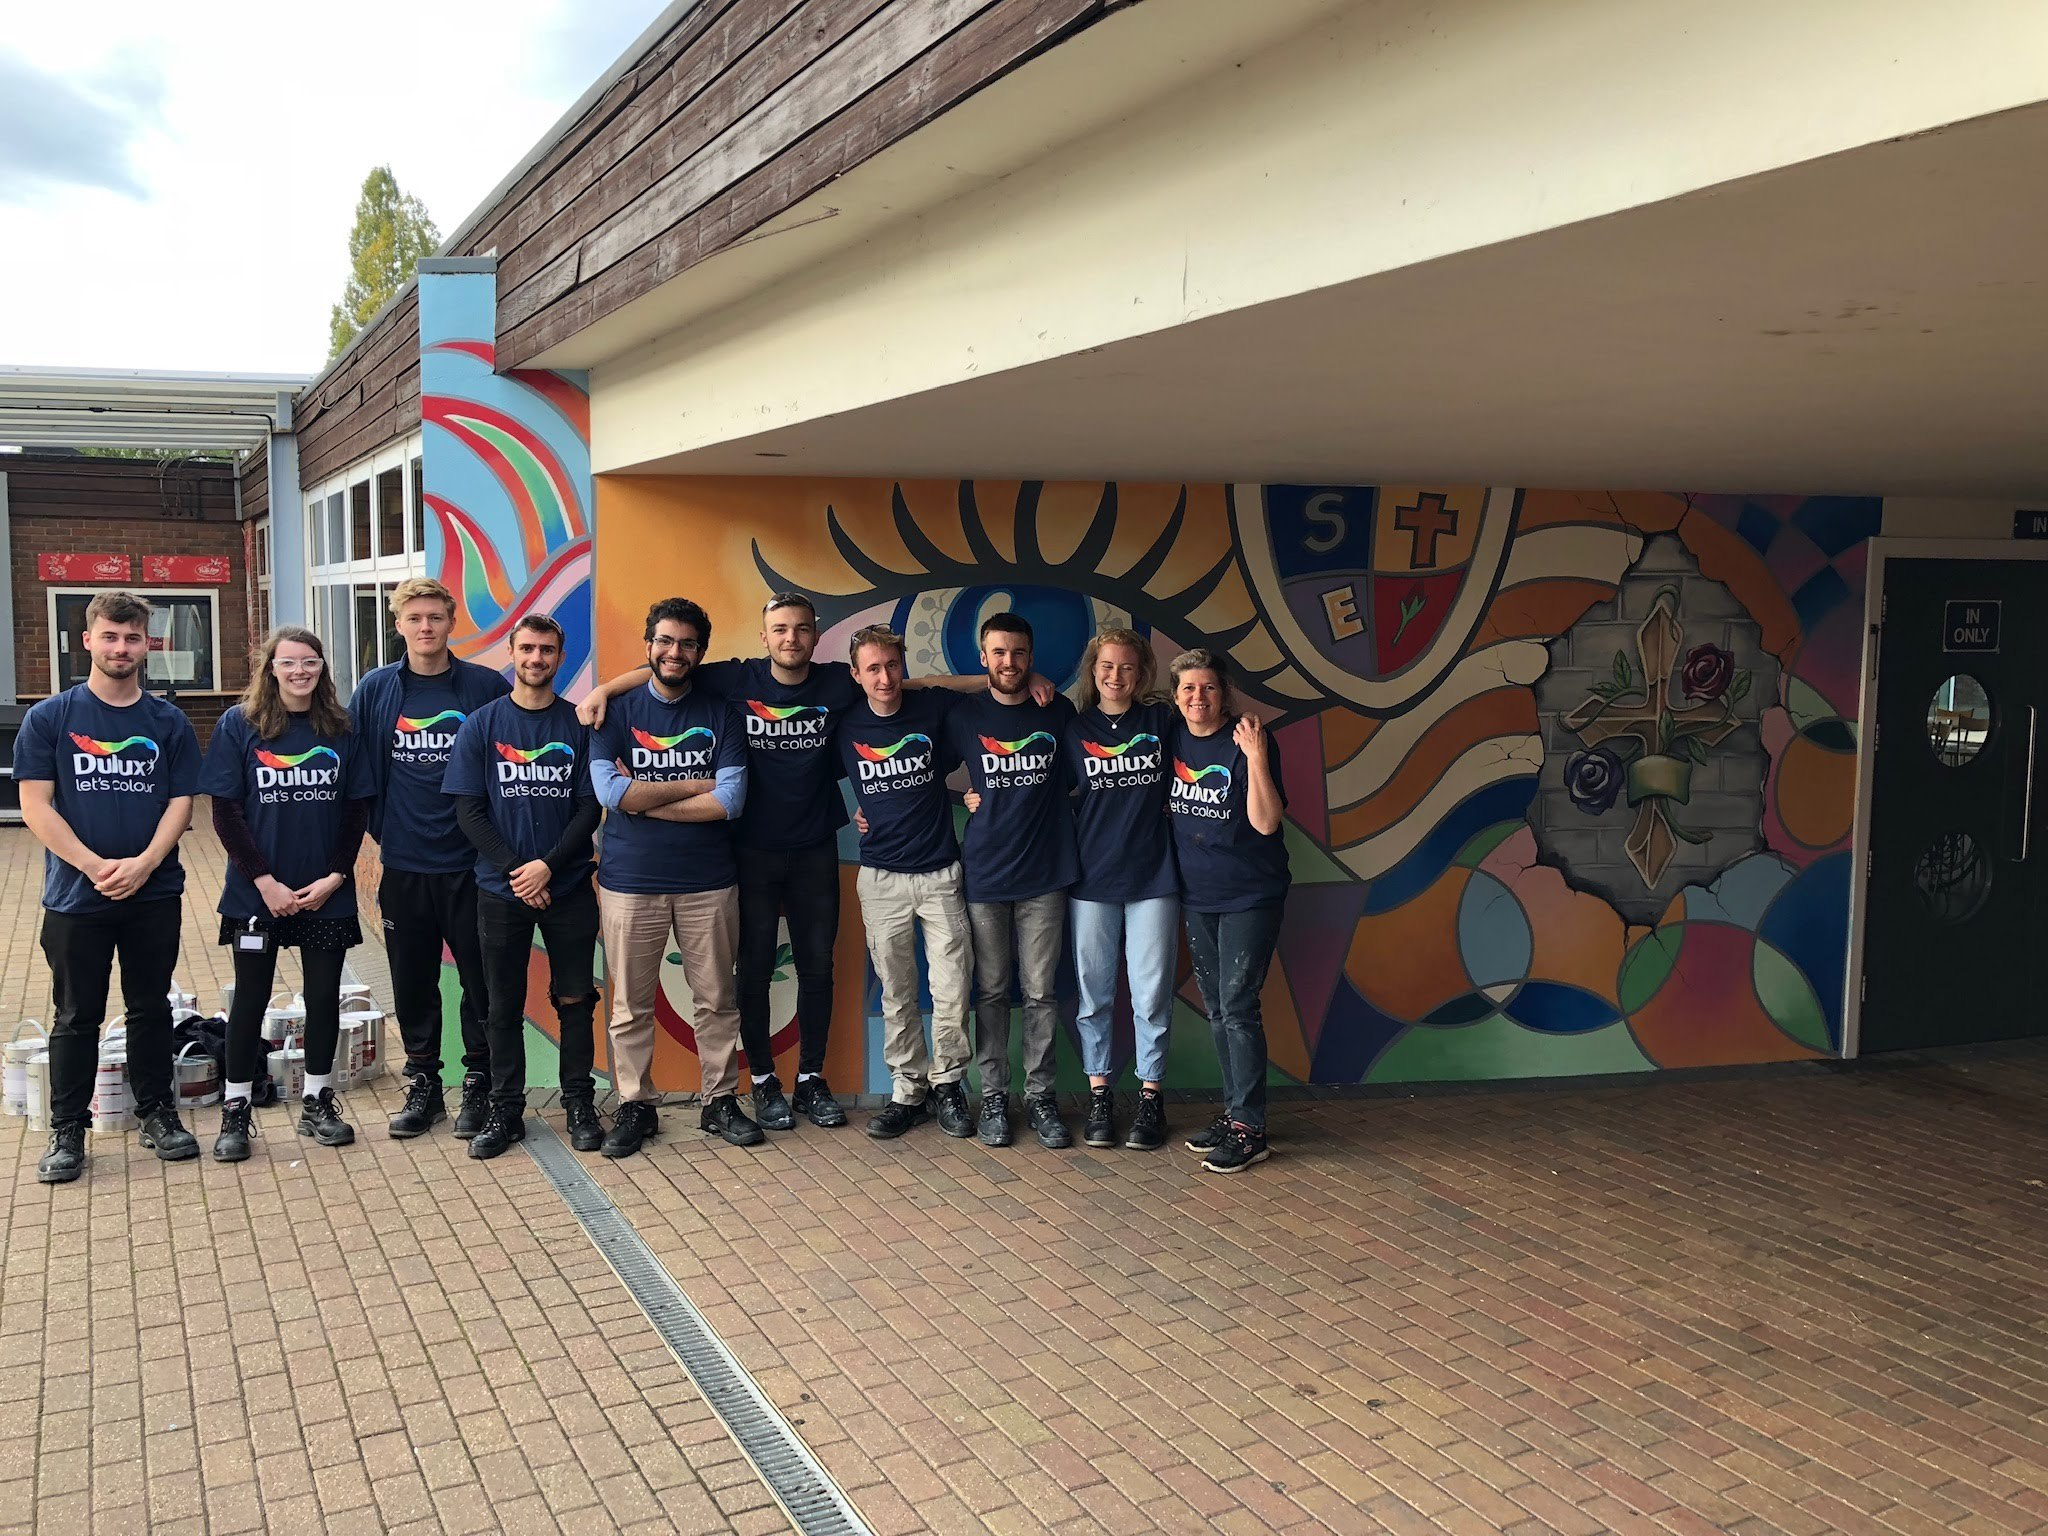 A group of 10 volunteers stand next to a newly paint wall that features a brightly coloured mural using cheap and environmentally paint from a Community RePaint scheme. The volunteers are all wearing t-shirts that feature the Dulux logo.